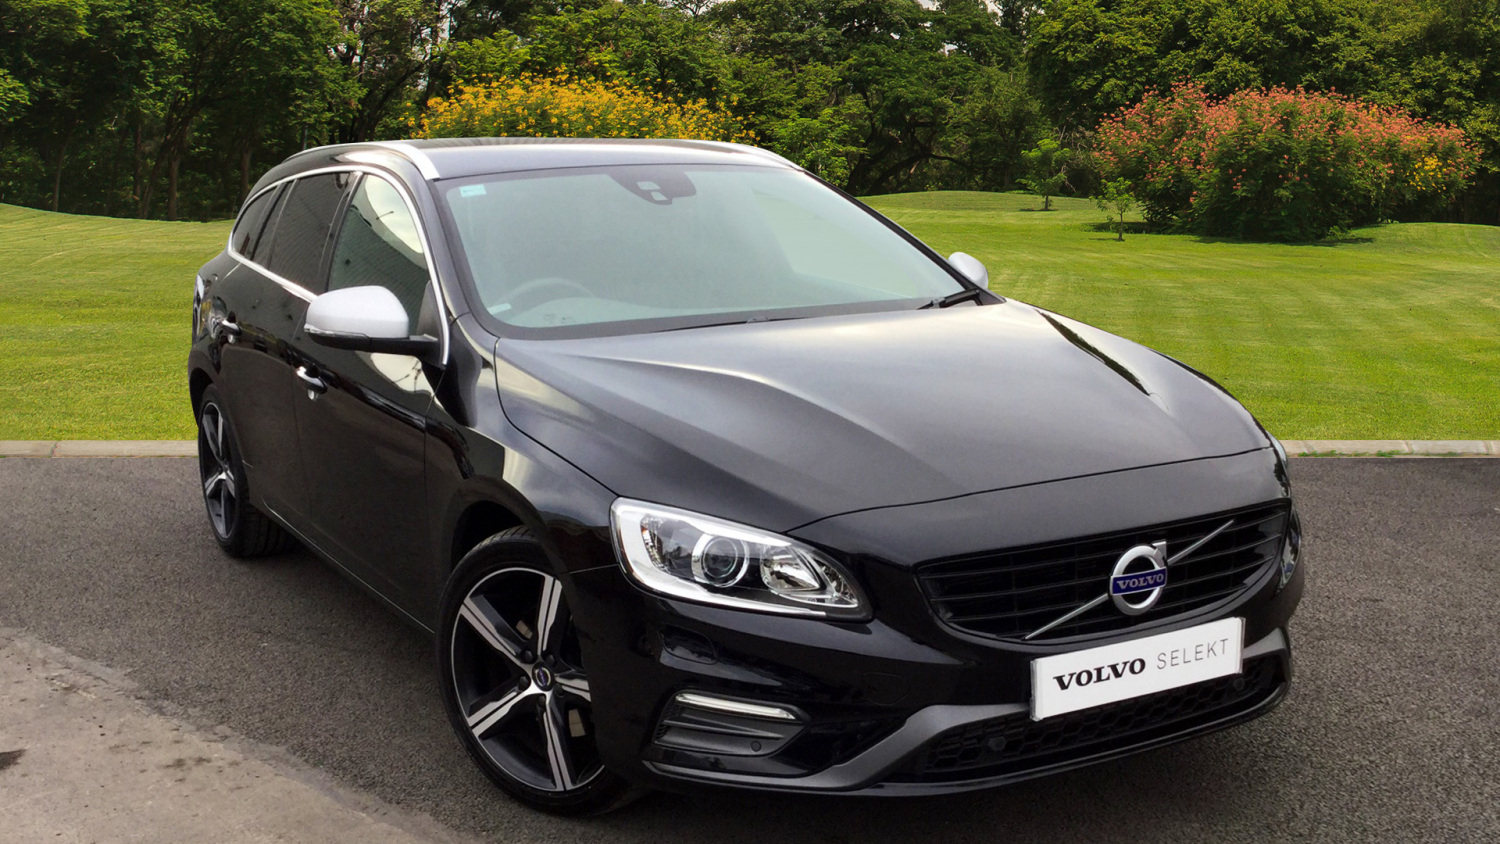 used volvo v60 d3 150 r design lux nav 5dr geartronic lthr diesel estate for sale vertu honda. Black Bedroom Furniture Sets. Home Design Ideas